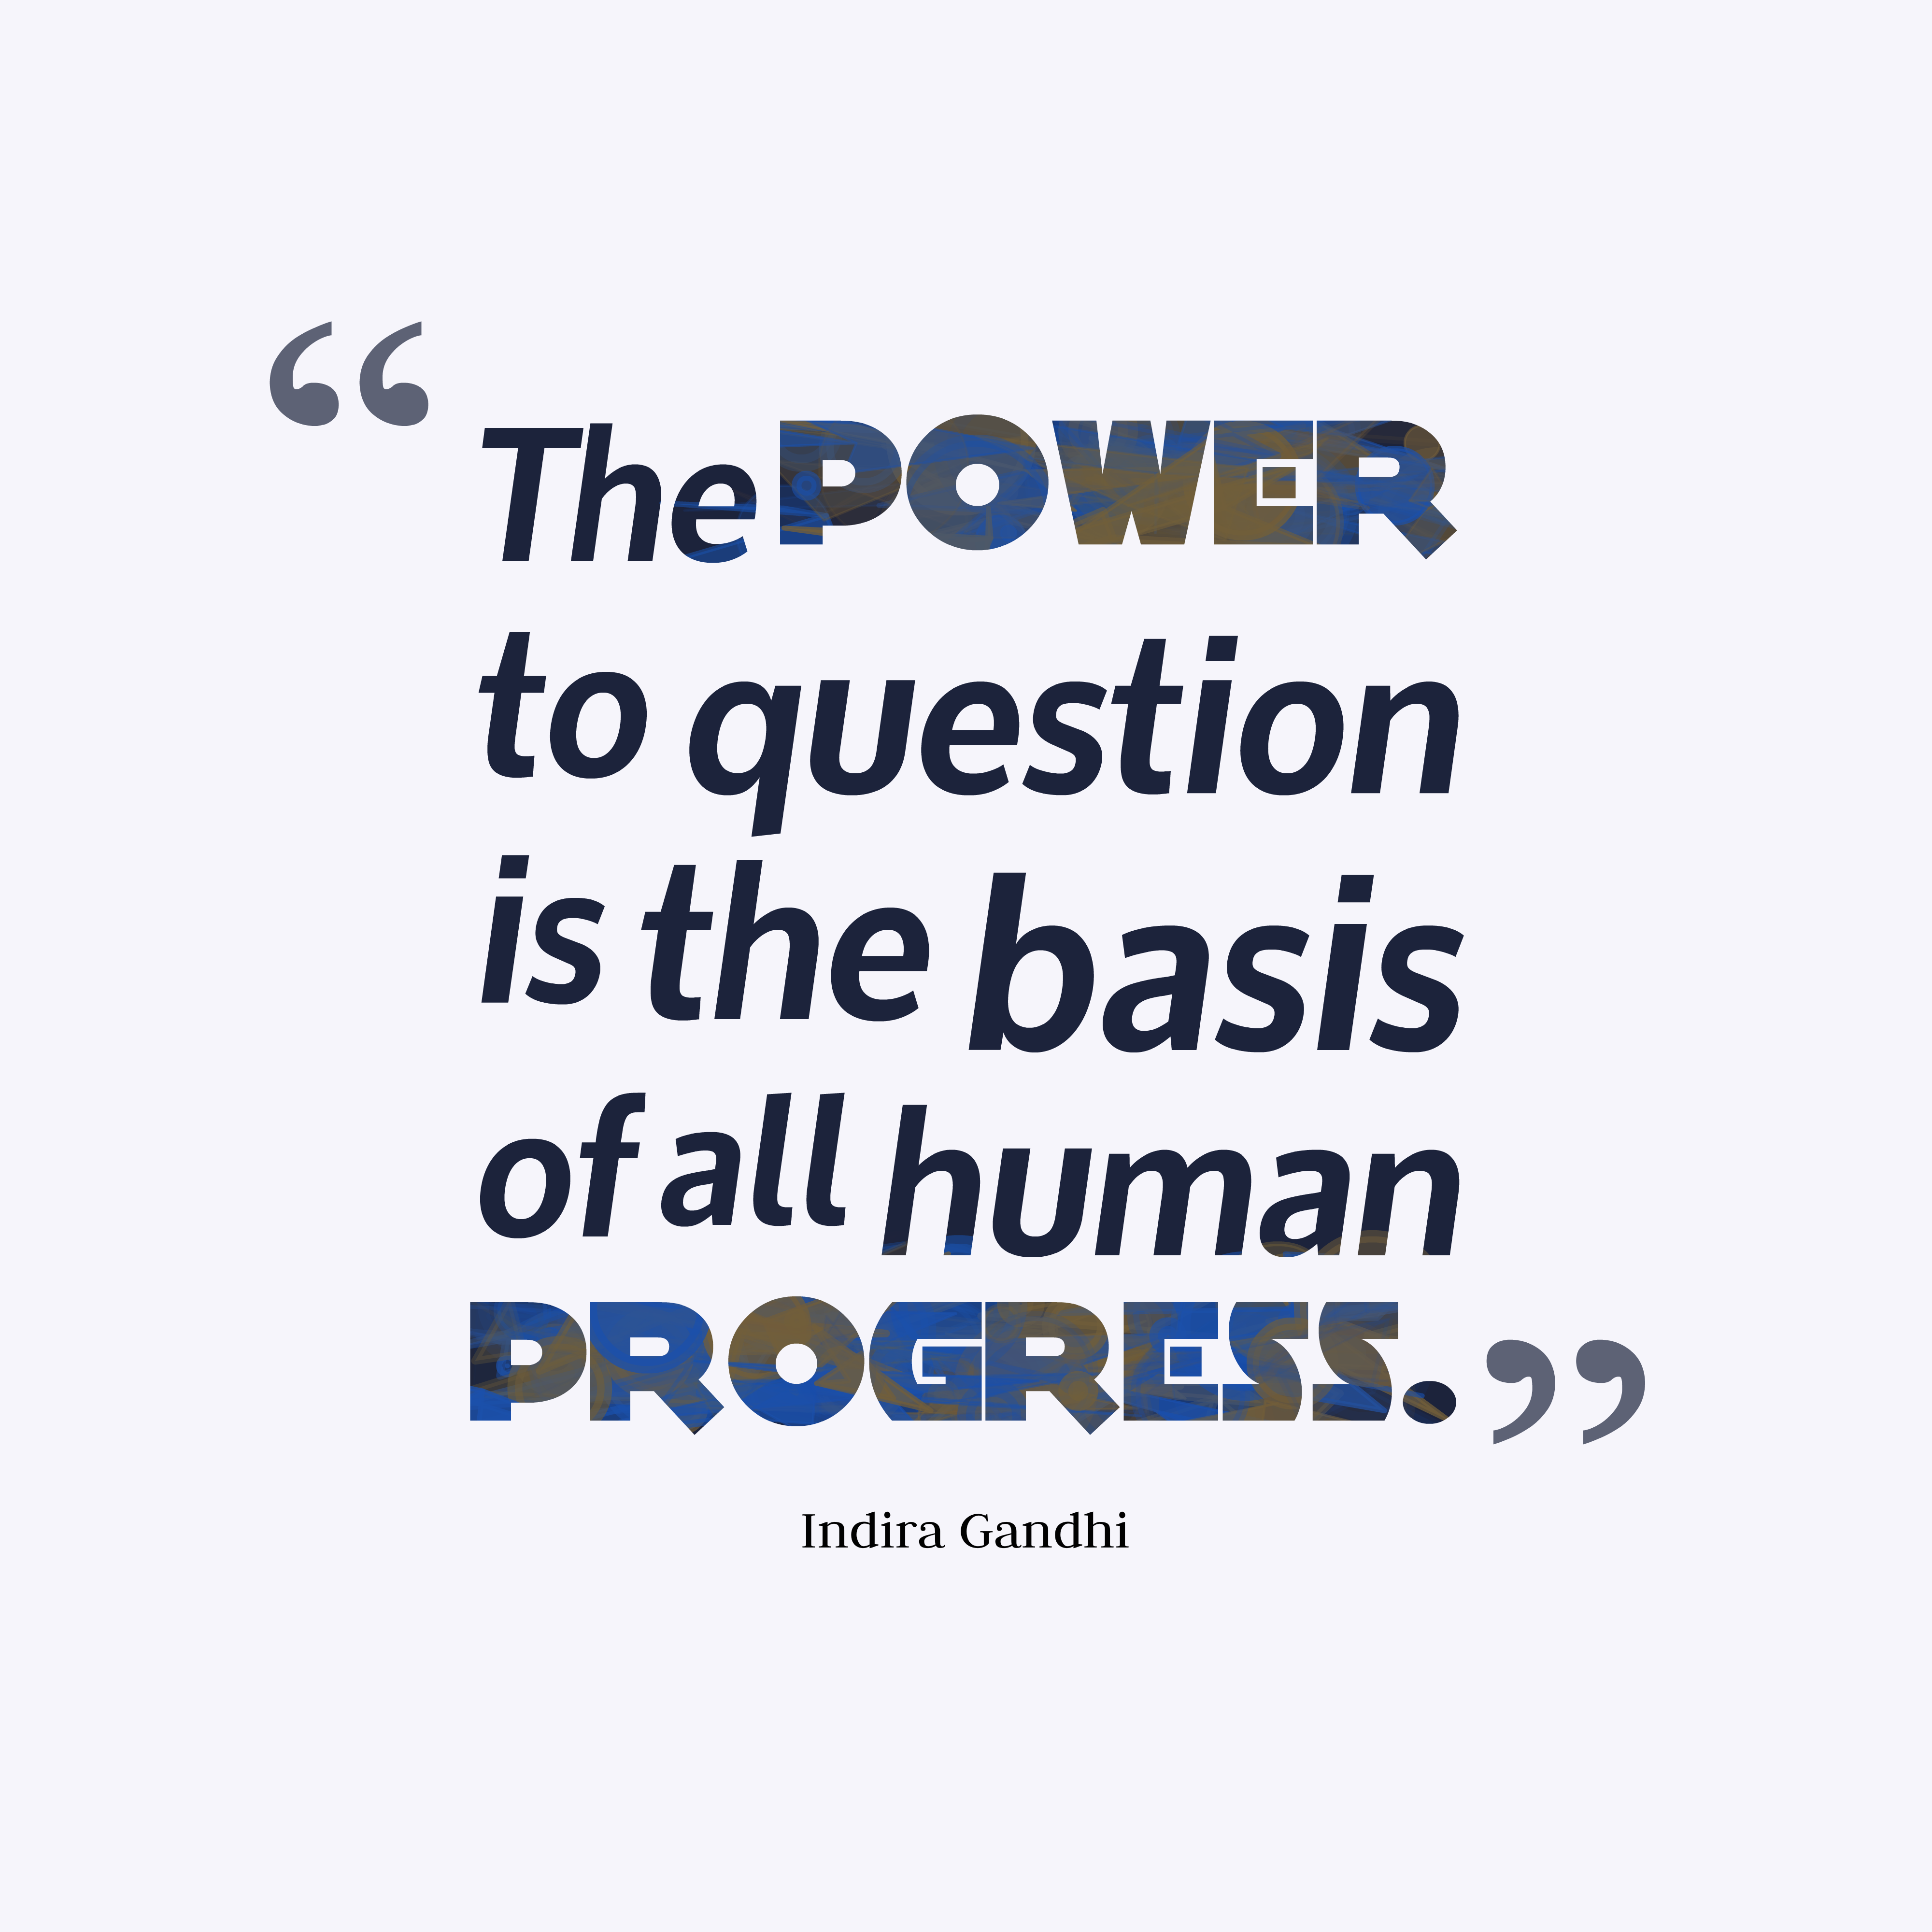 Quotes image of The power to question is the basis of all human progress.